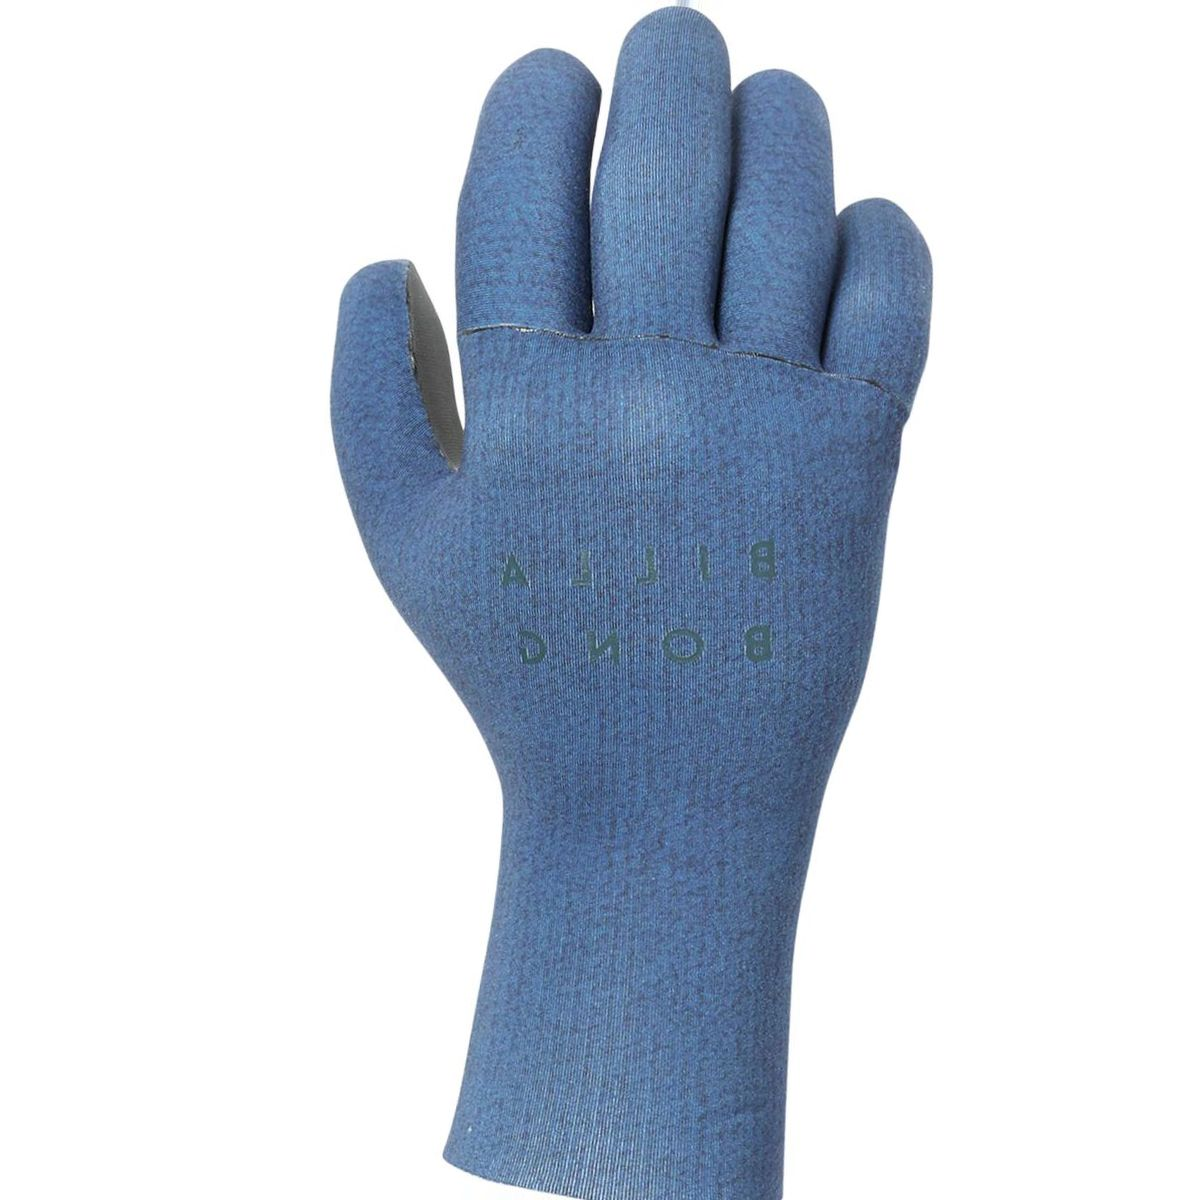 Billabong Salty Daze 2 Glove - Women's